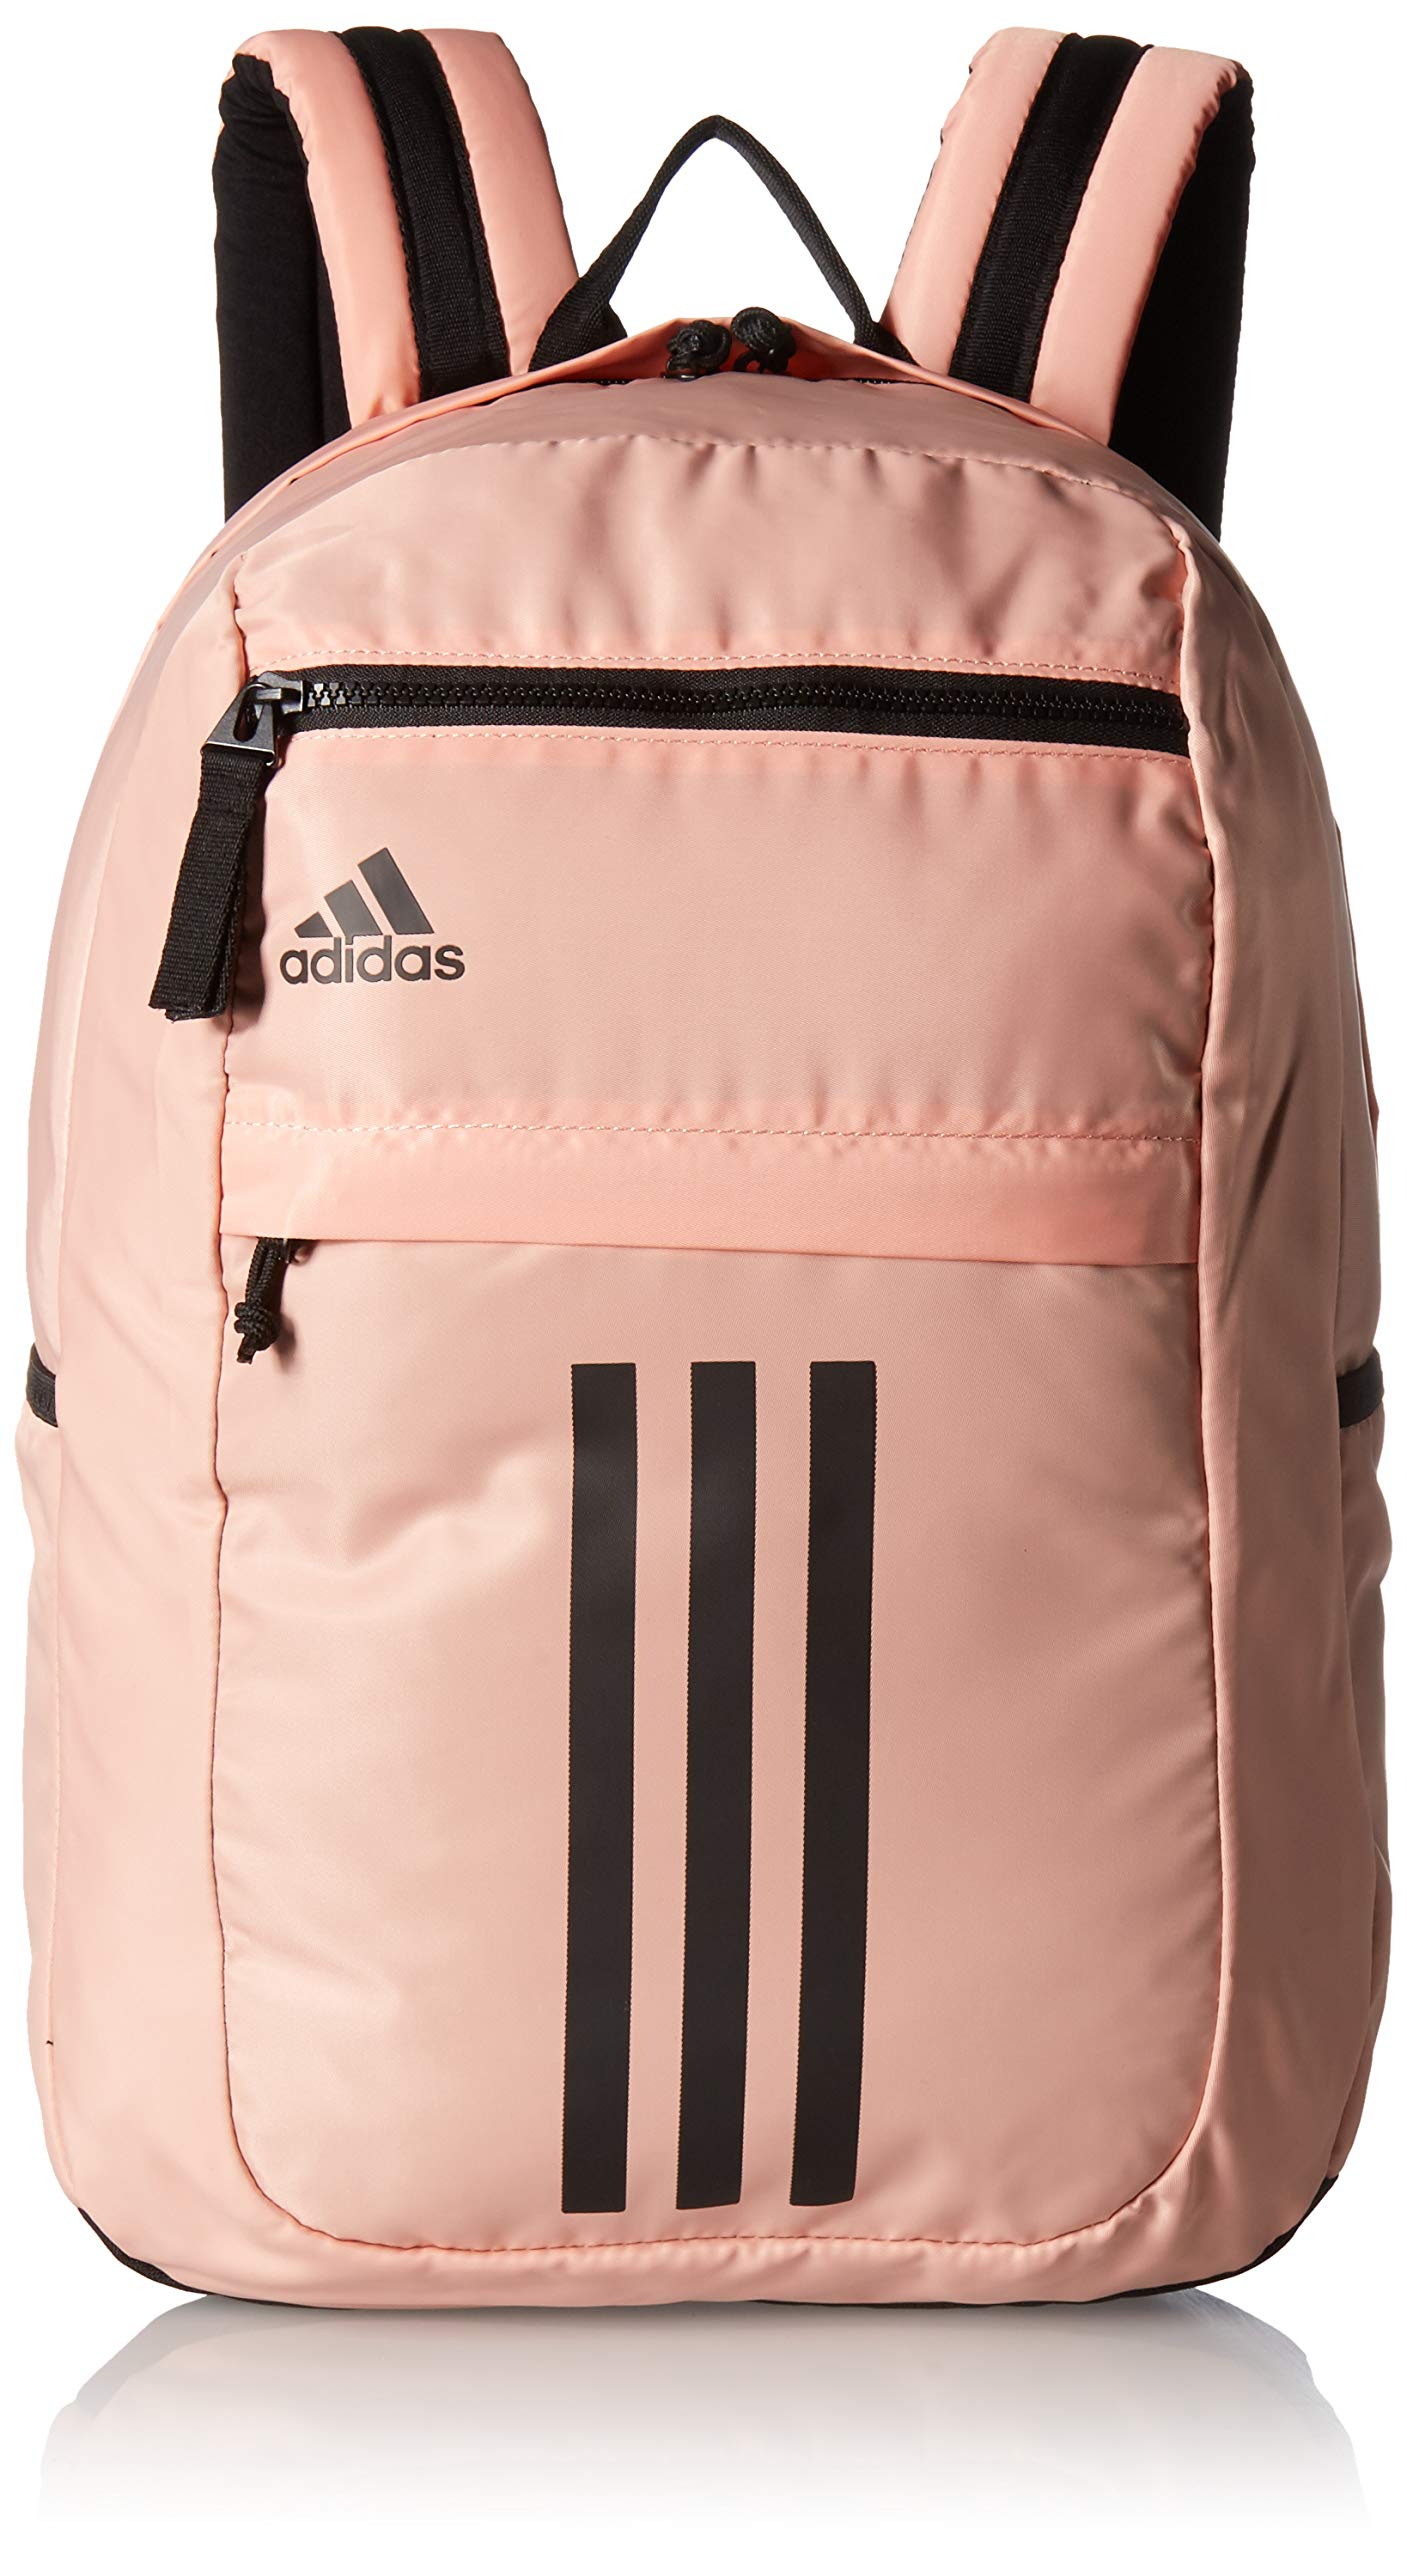 adidas Unisex League 3 Stripe Backpack, Glow Pink/Black, ONE SIZE by adidas